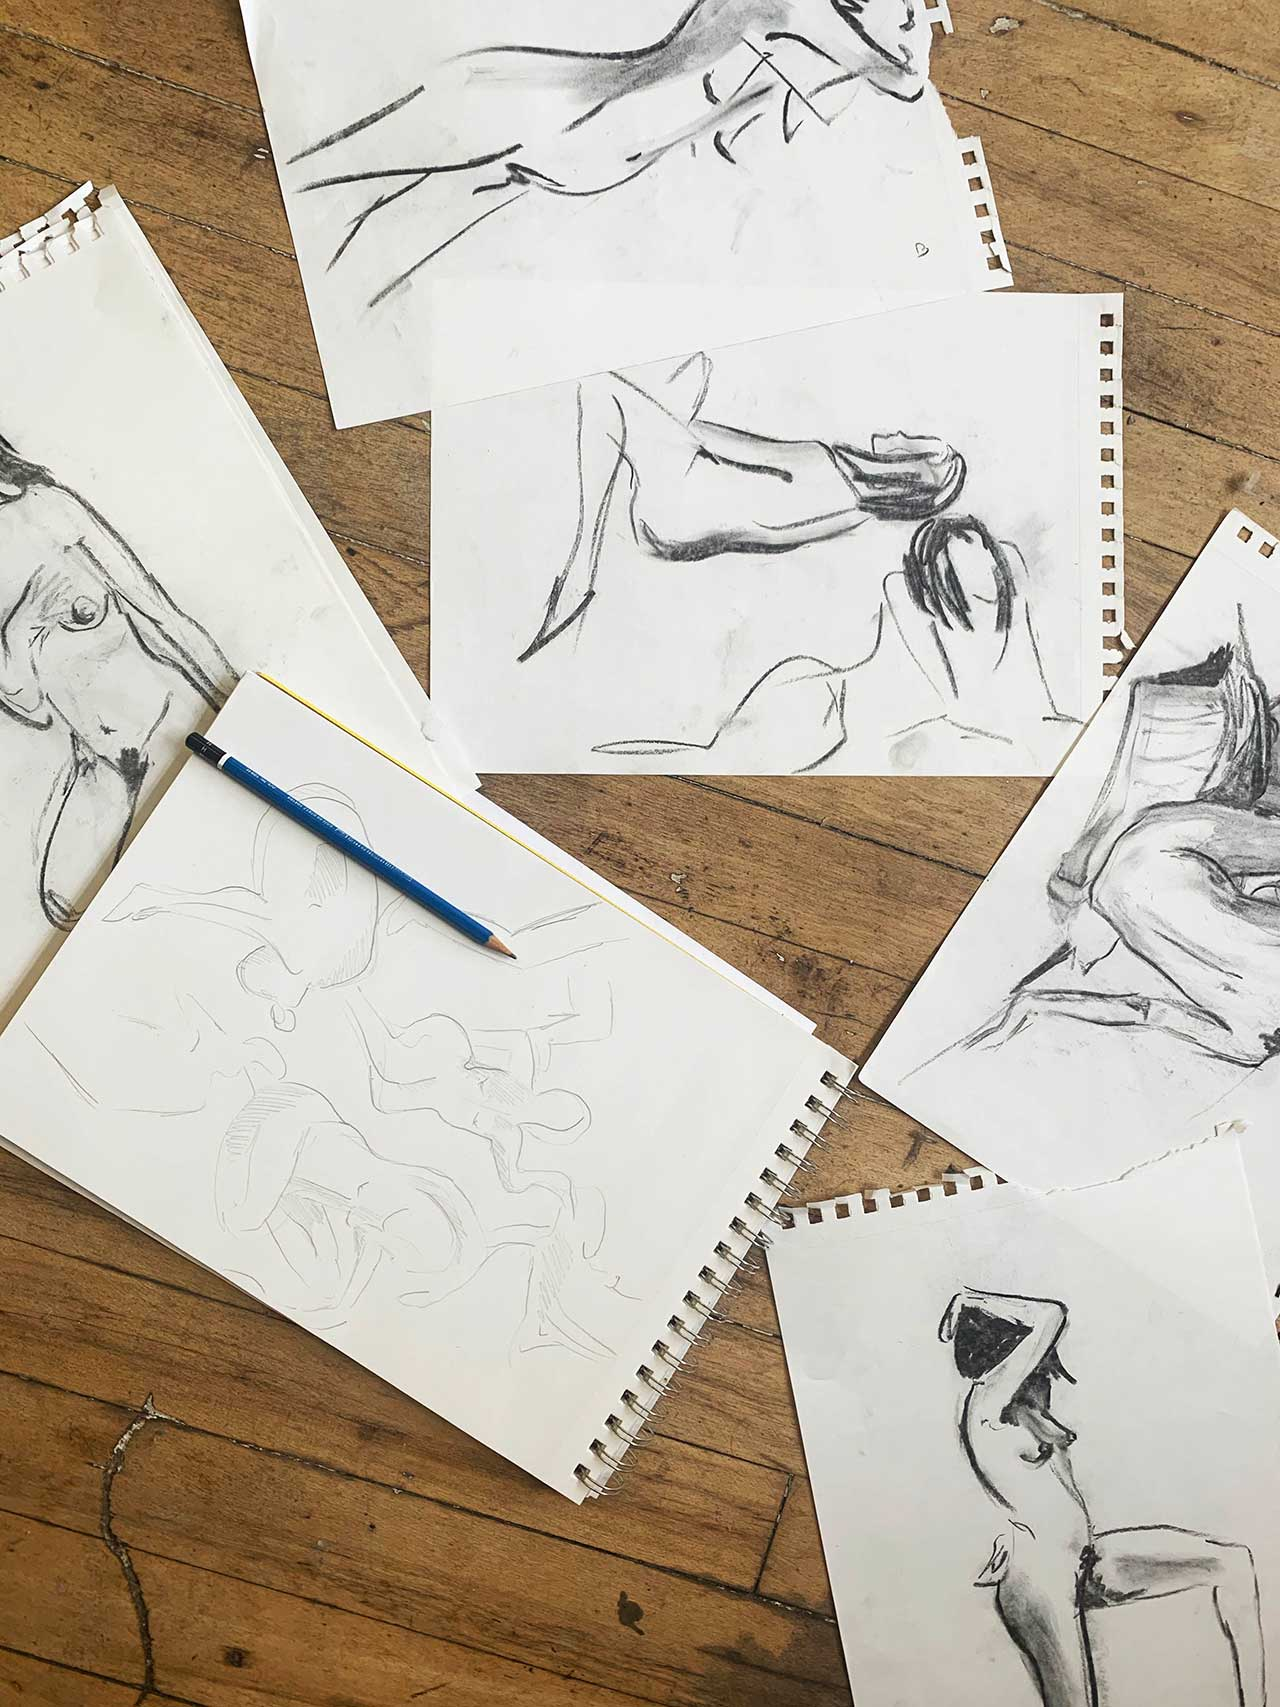 black and white figure sketches askew on table